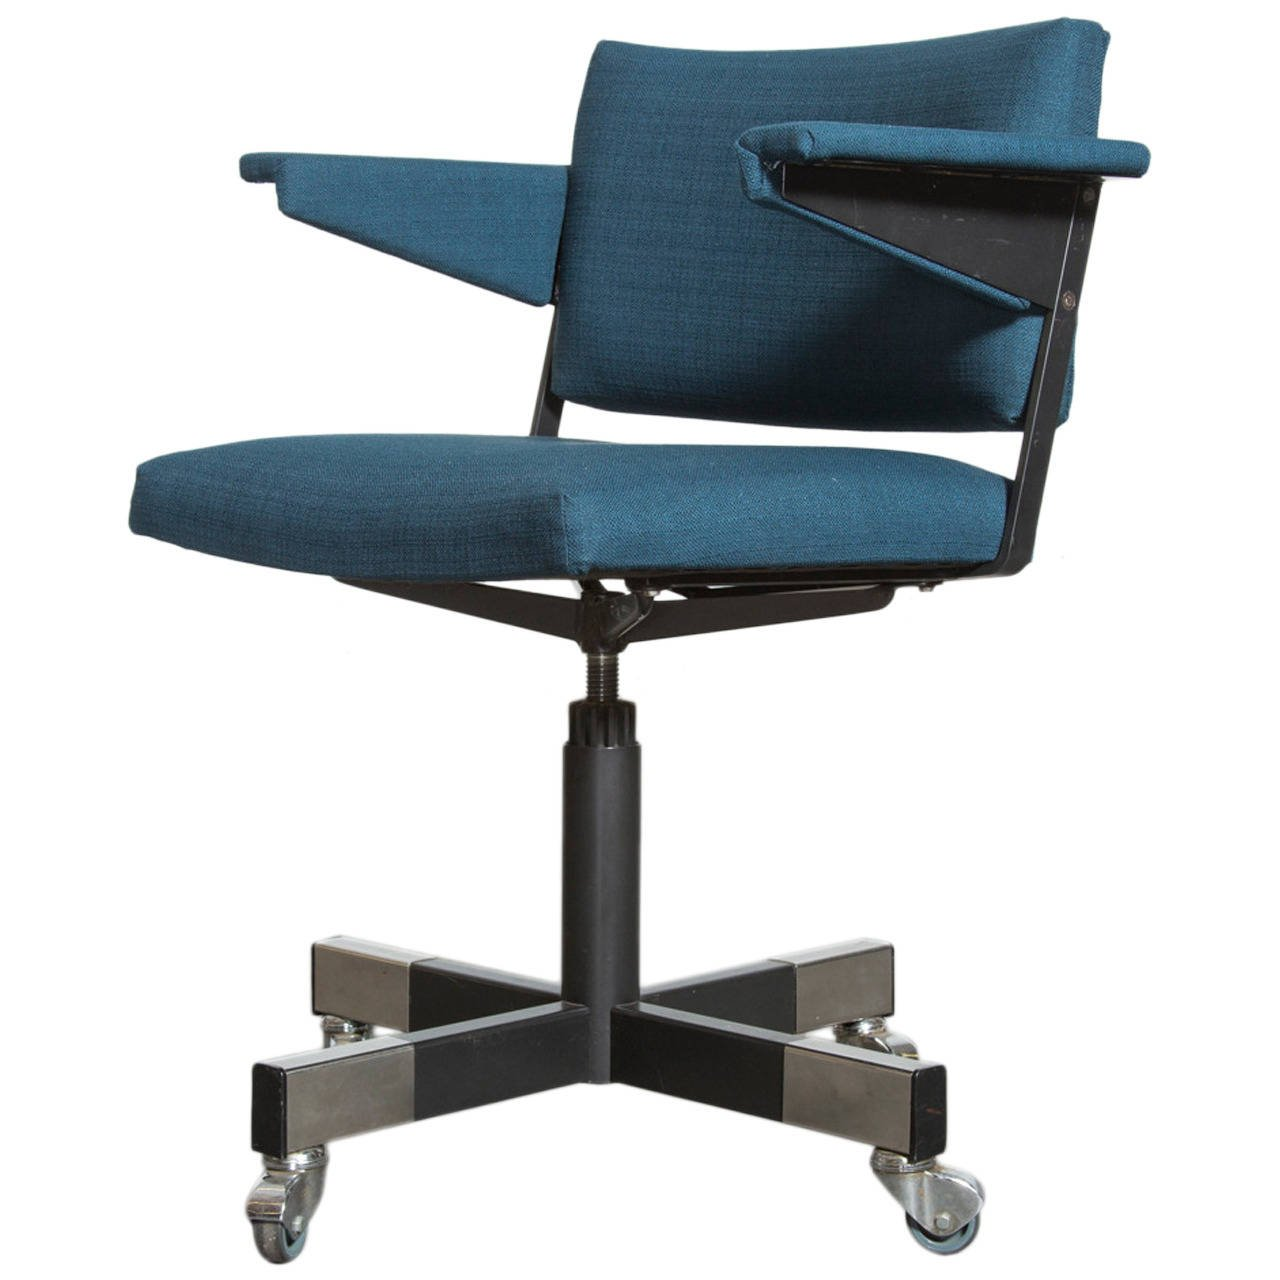 Rolling Office Chair  bangkokfoodietourcom